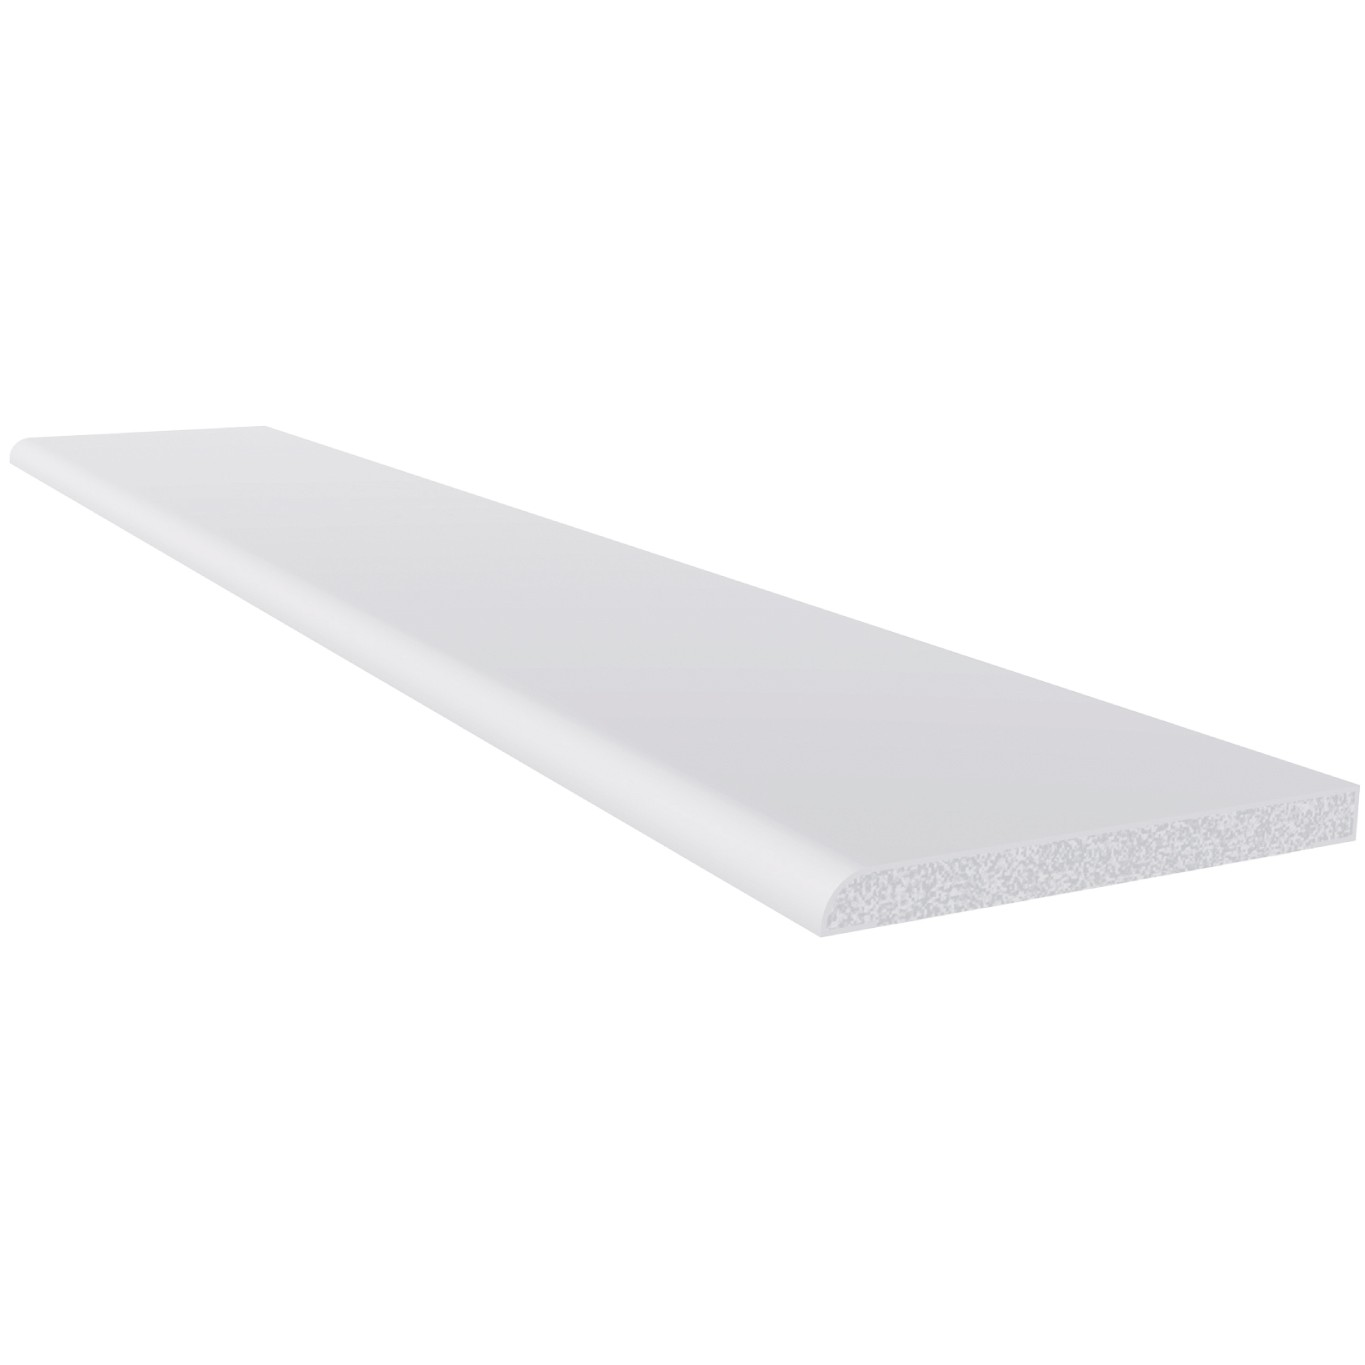 Freefoam 6mm Plastic Architrave (1.25 metre x 4) - White, 60mm